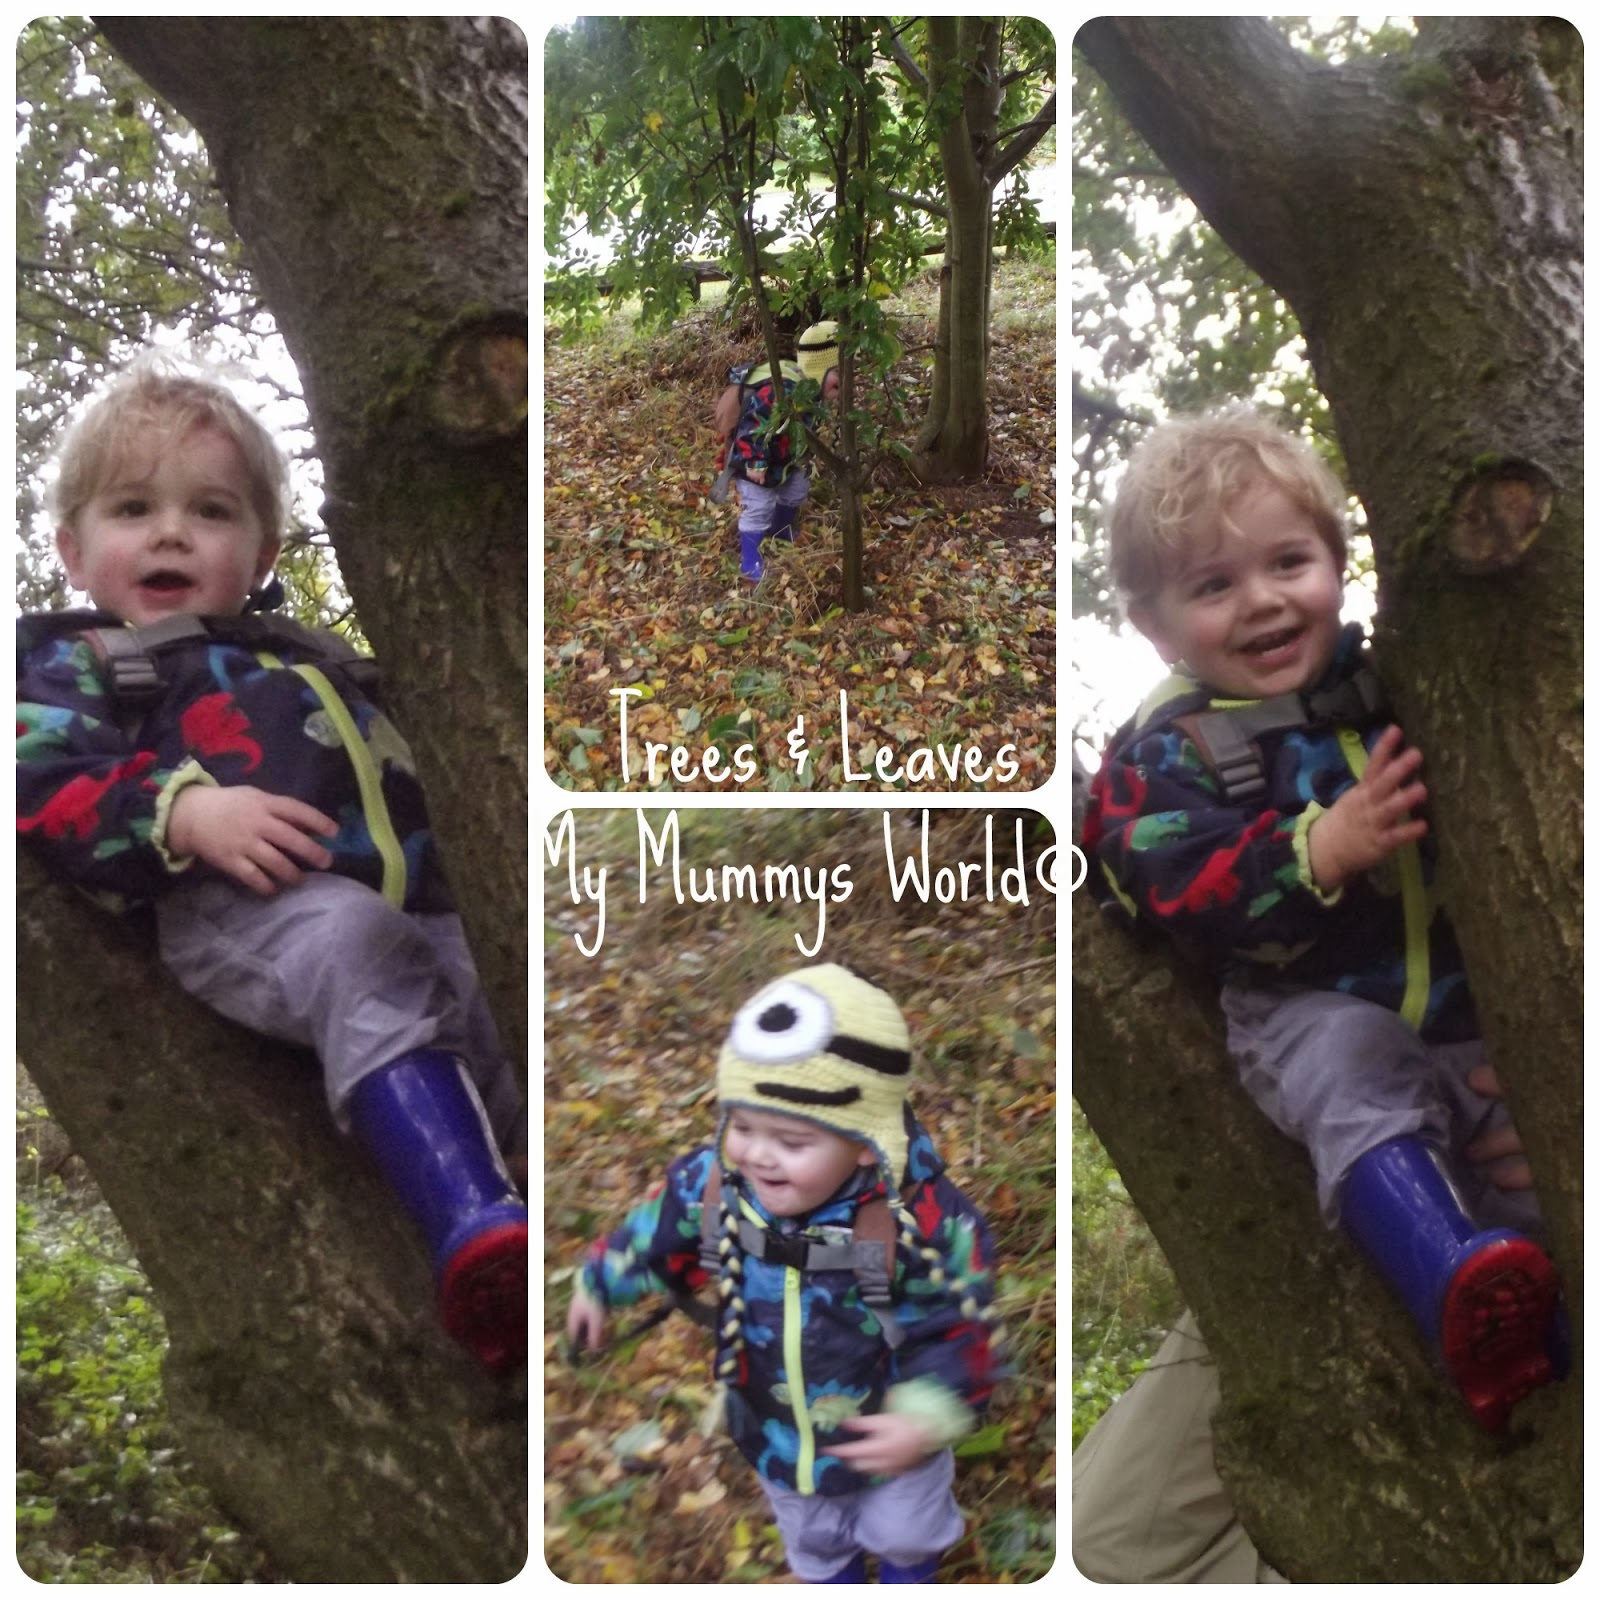 Exploring Trees & Leaves. My Mummys World©